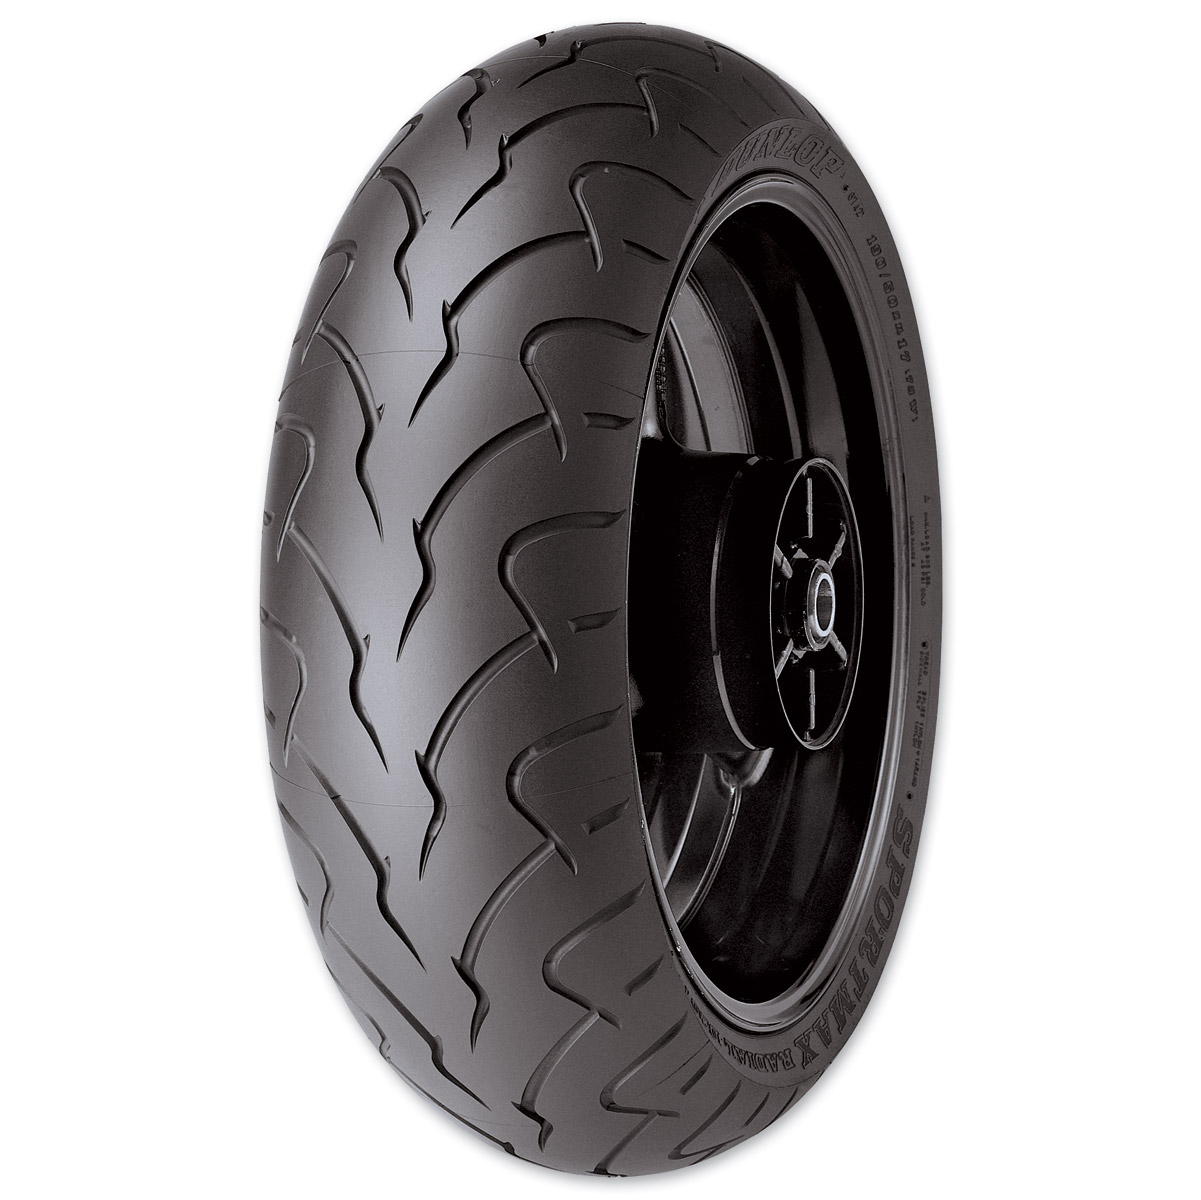 Dunlop D207 ZR 180/55ZR18 Rear Tire